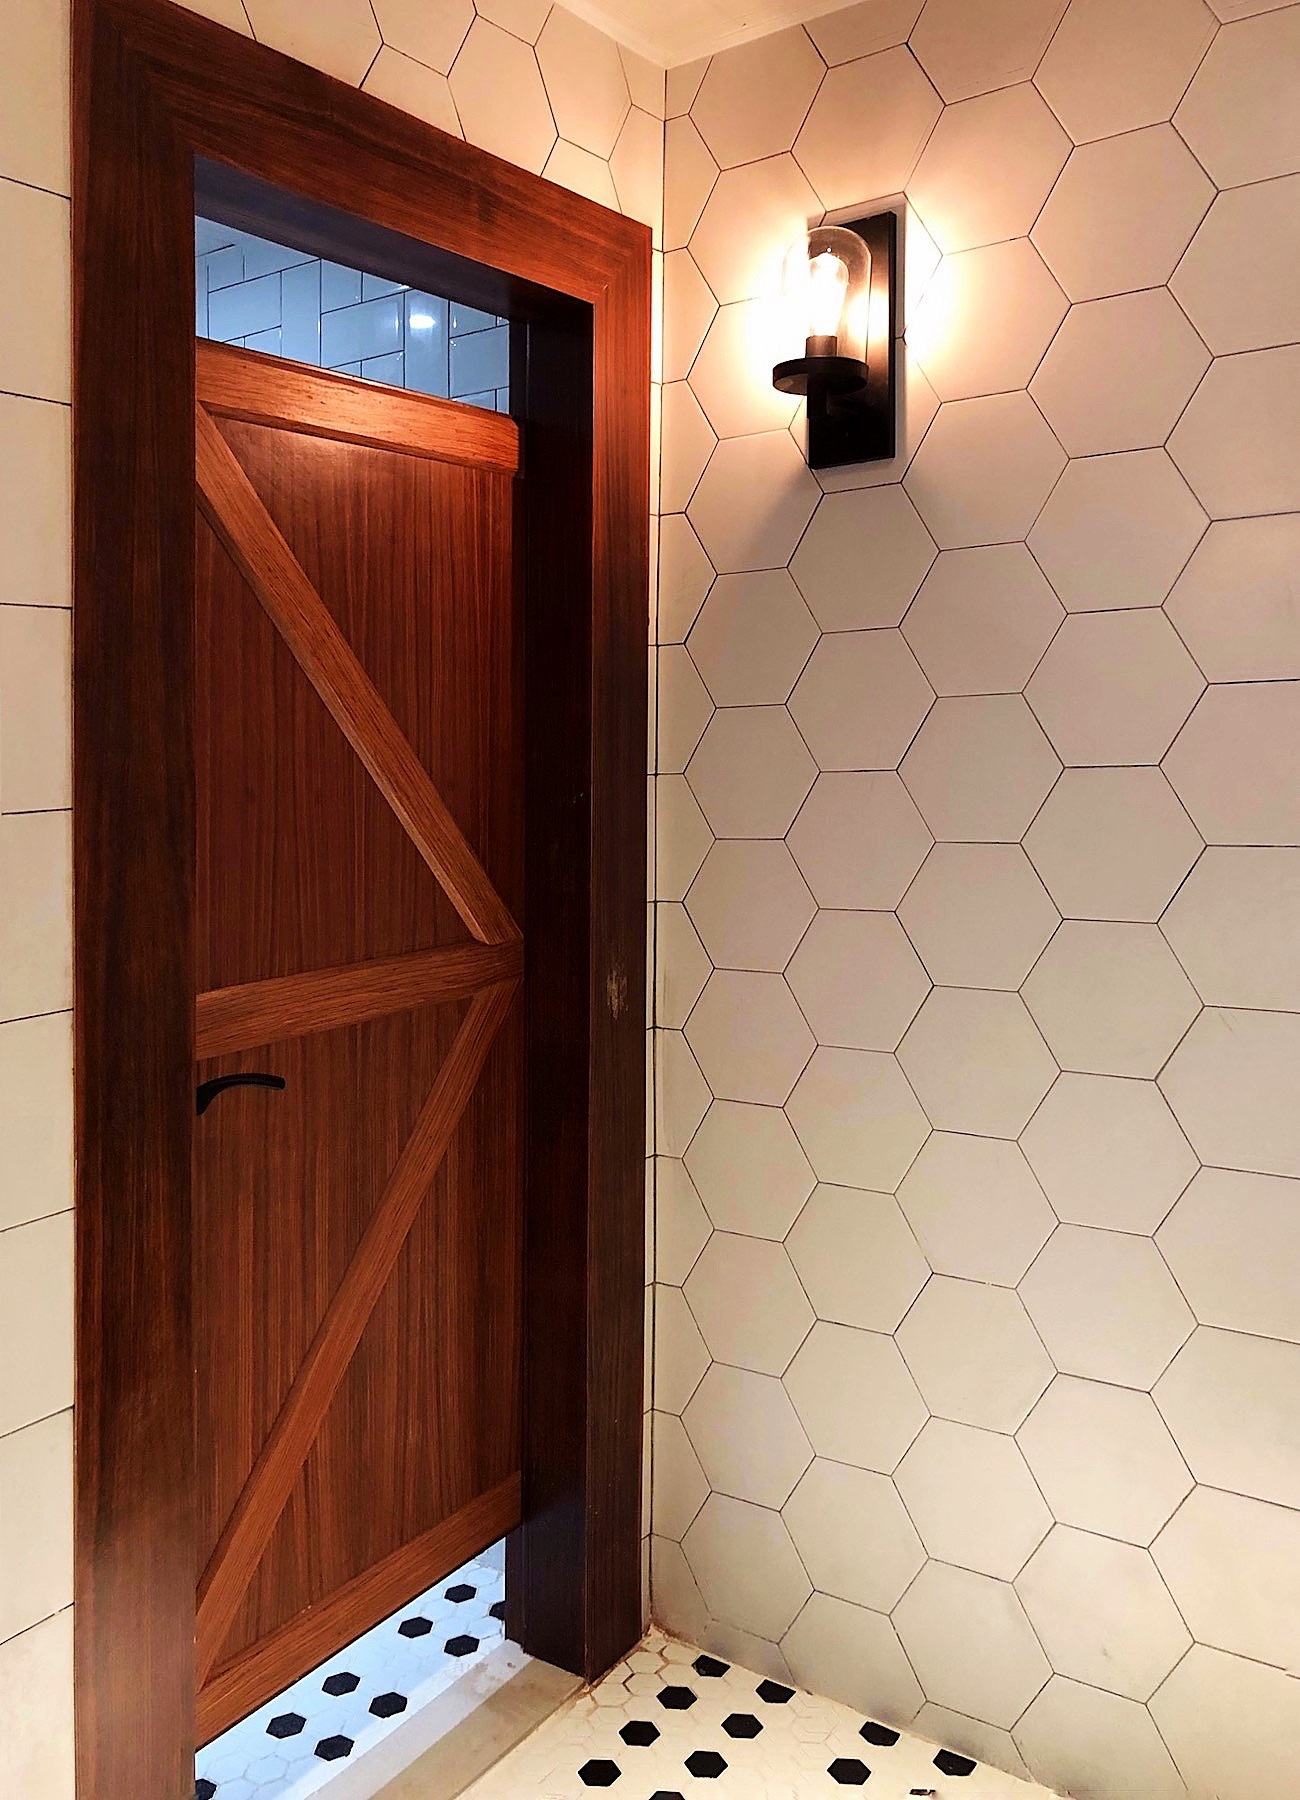 Grandway Office Renovation 2018 Guest Toilet 002